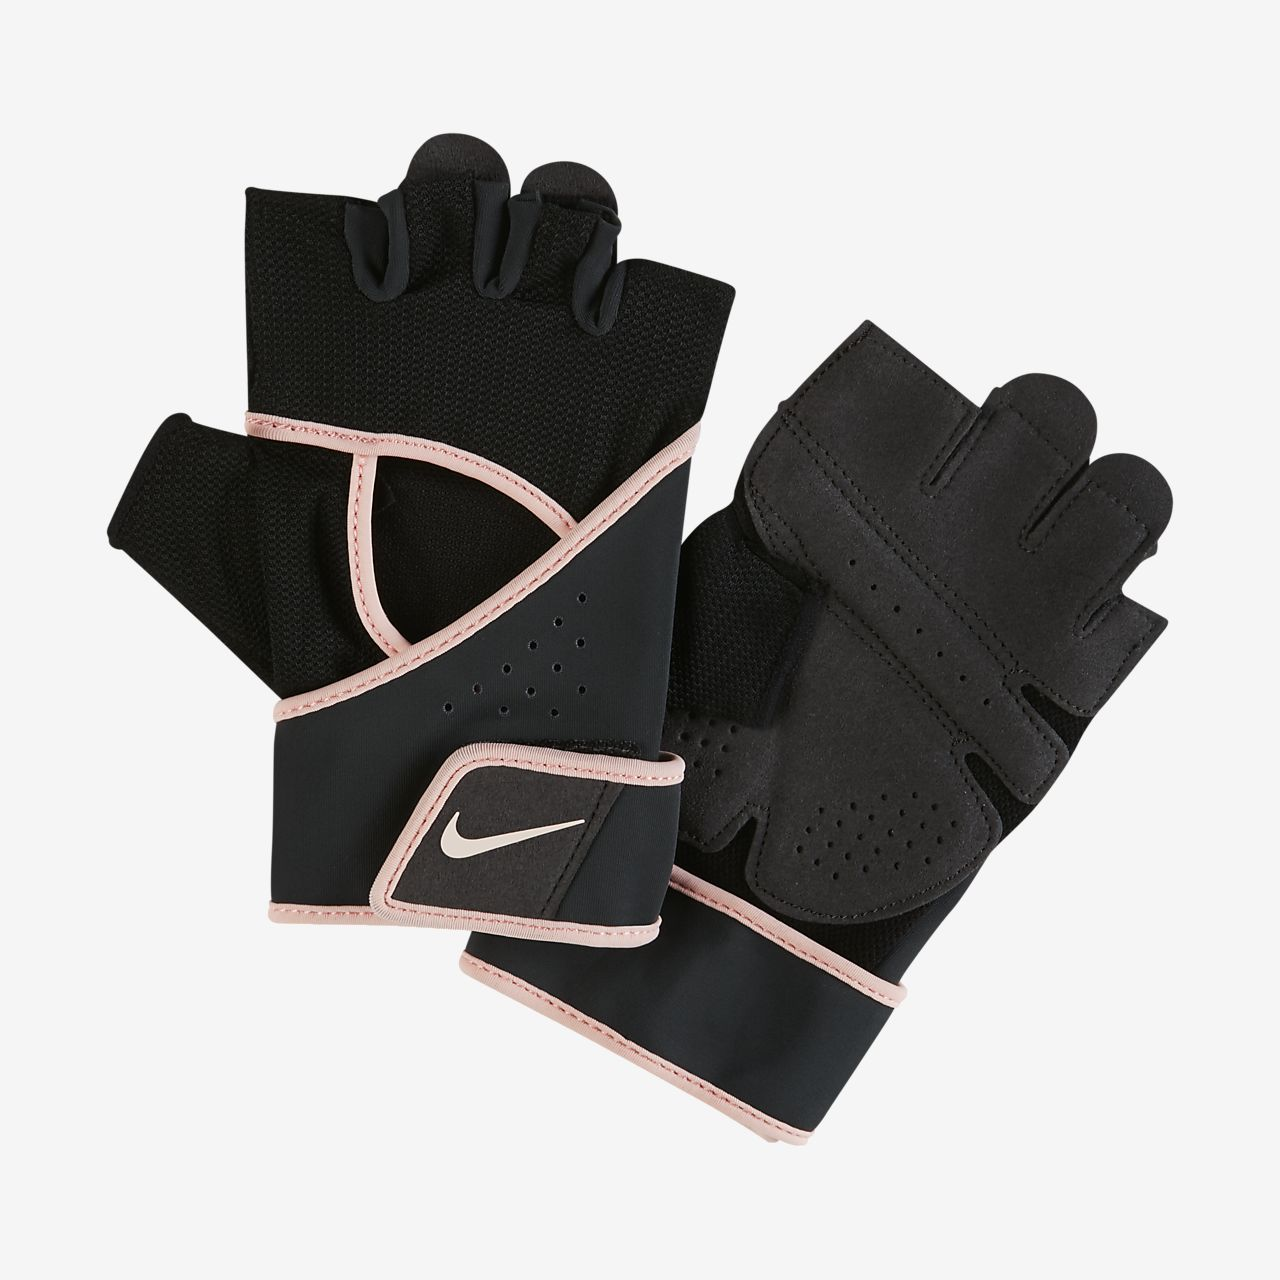 Workout Gloves Womens Nike: Nike Gym Premium Fitness Women's Training Gloves. Nike.com NL